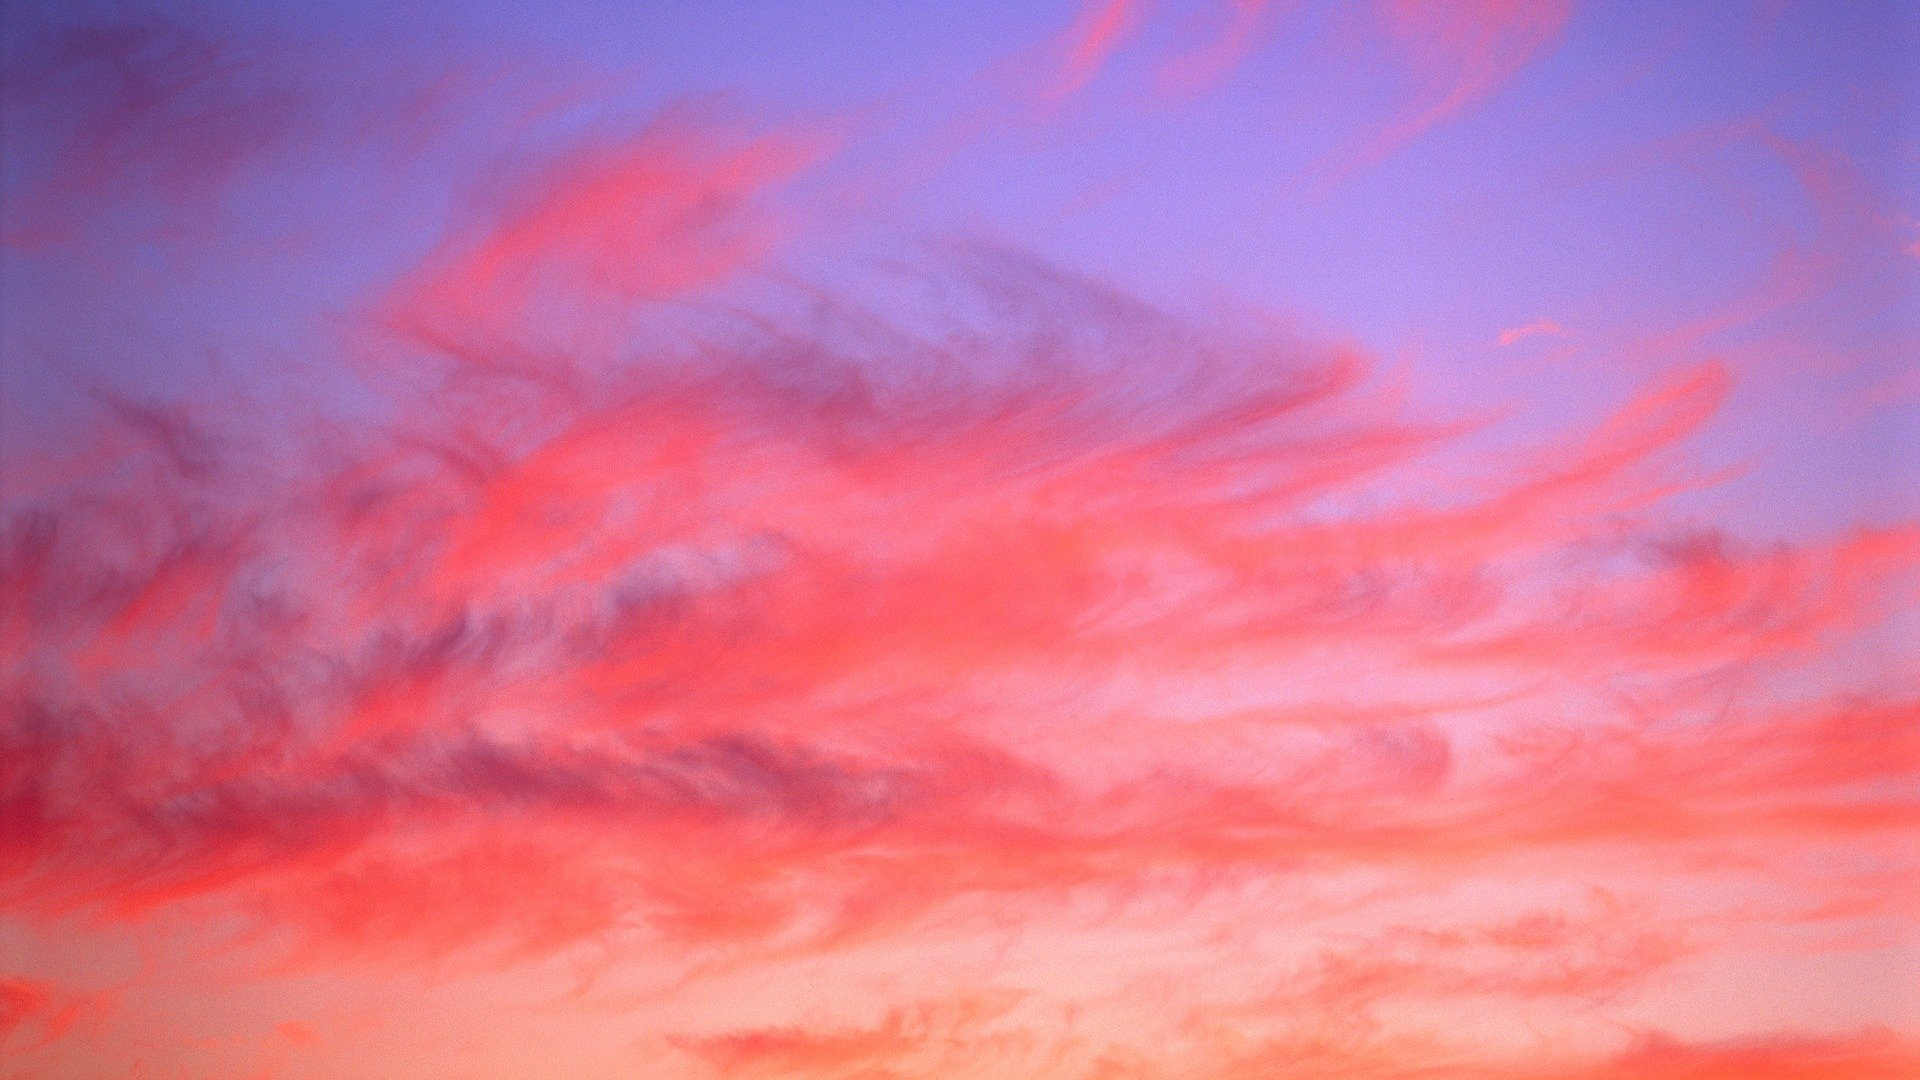 Pink Sky full screen hd wallpaper